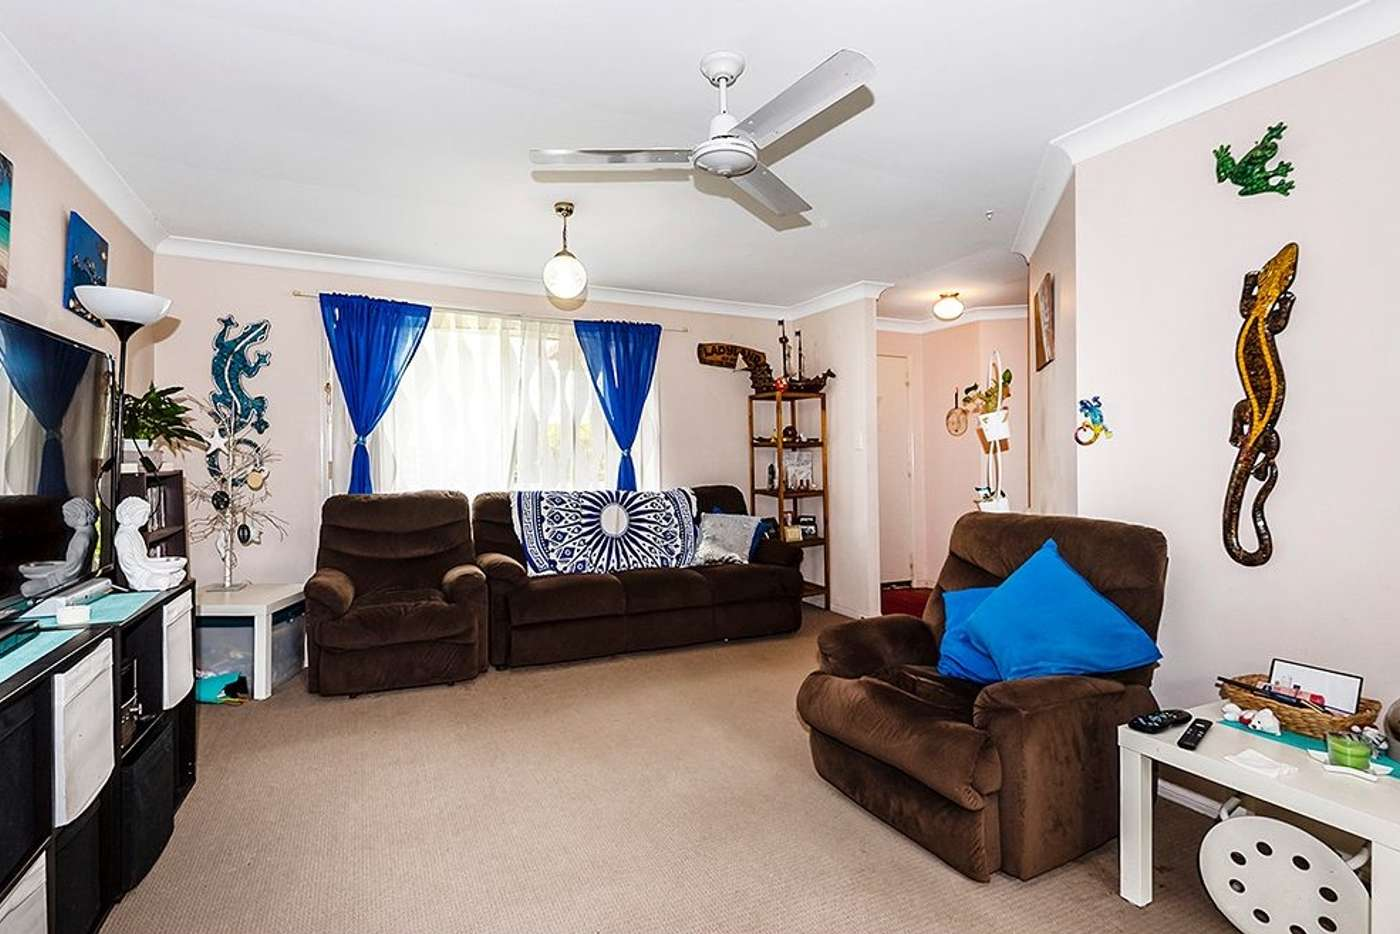 Sixth view of Homely house listing, 22 Jessie Crescent, Bethania QLD 4205